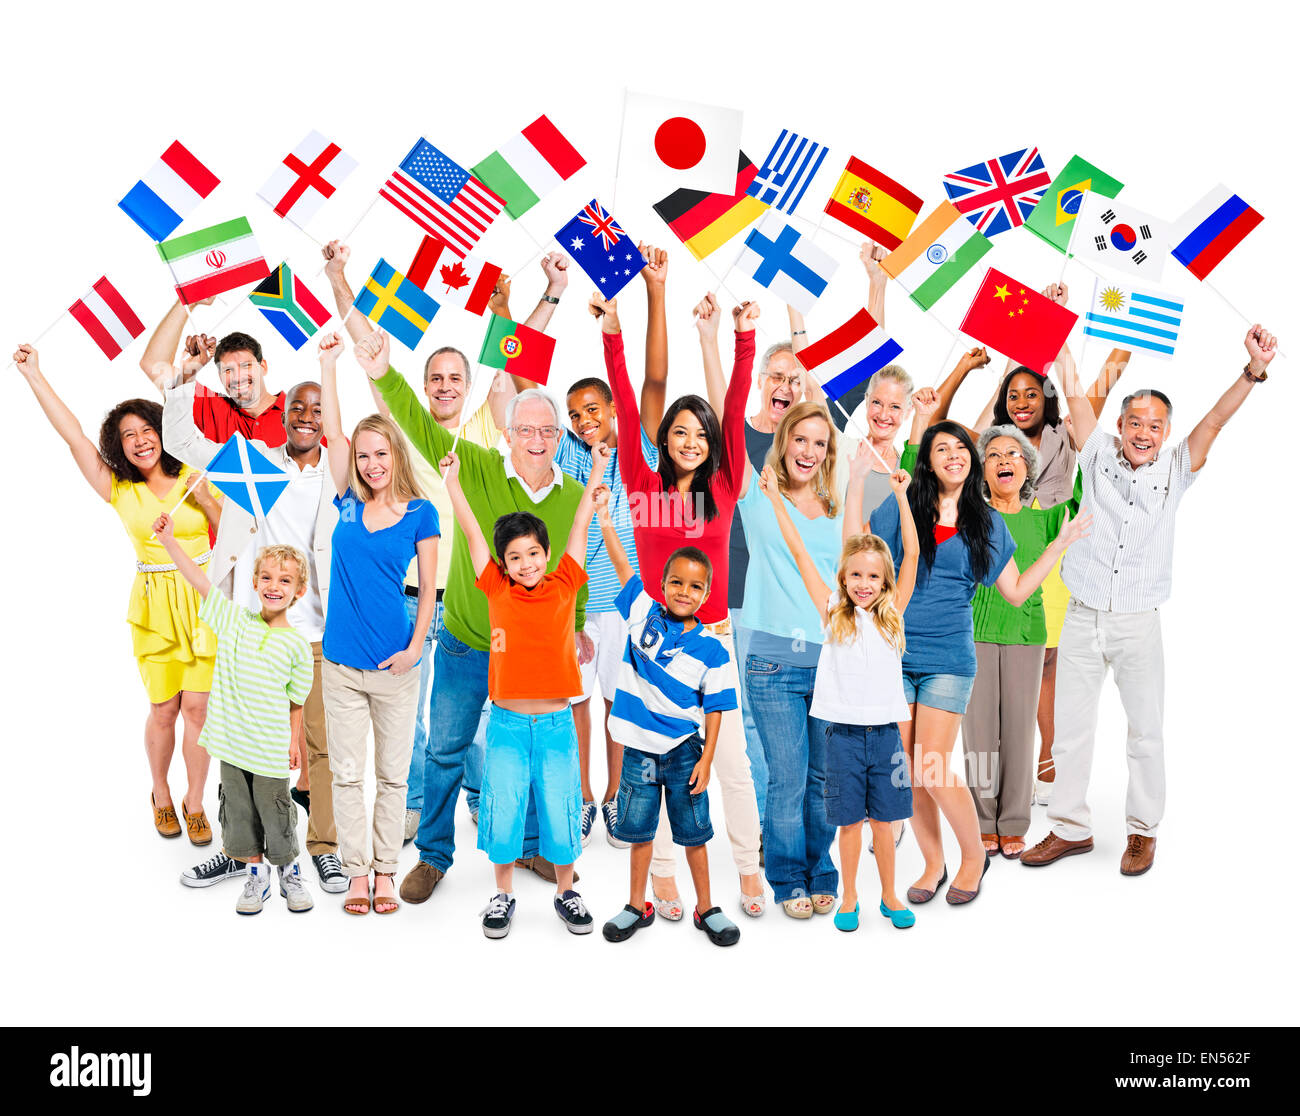 Large group of multi-ethnic diverse mixed age people celebrating while holding flags. - Stock Image